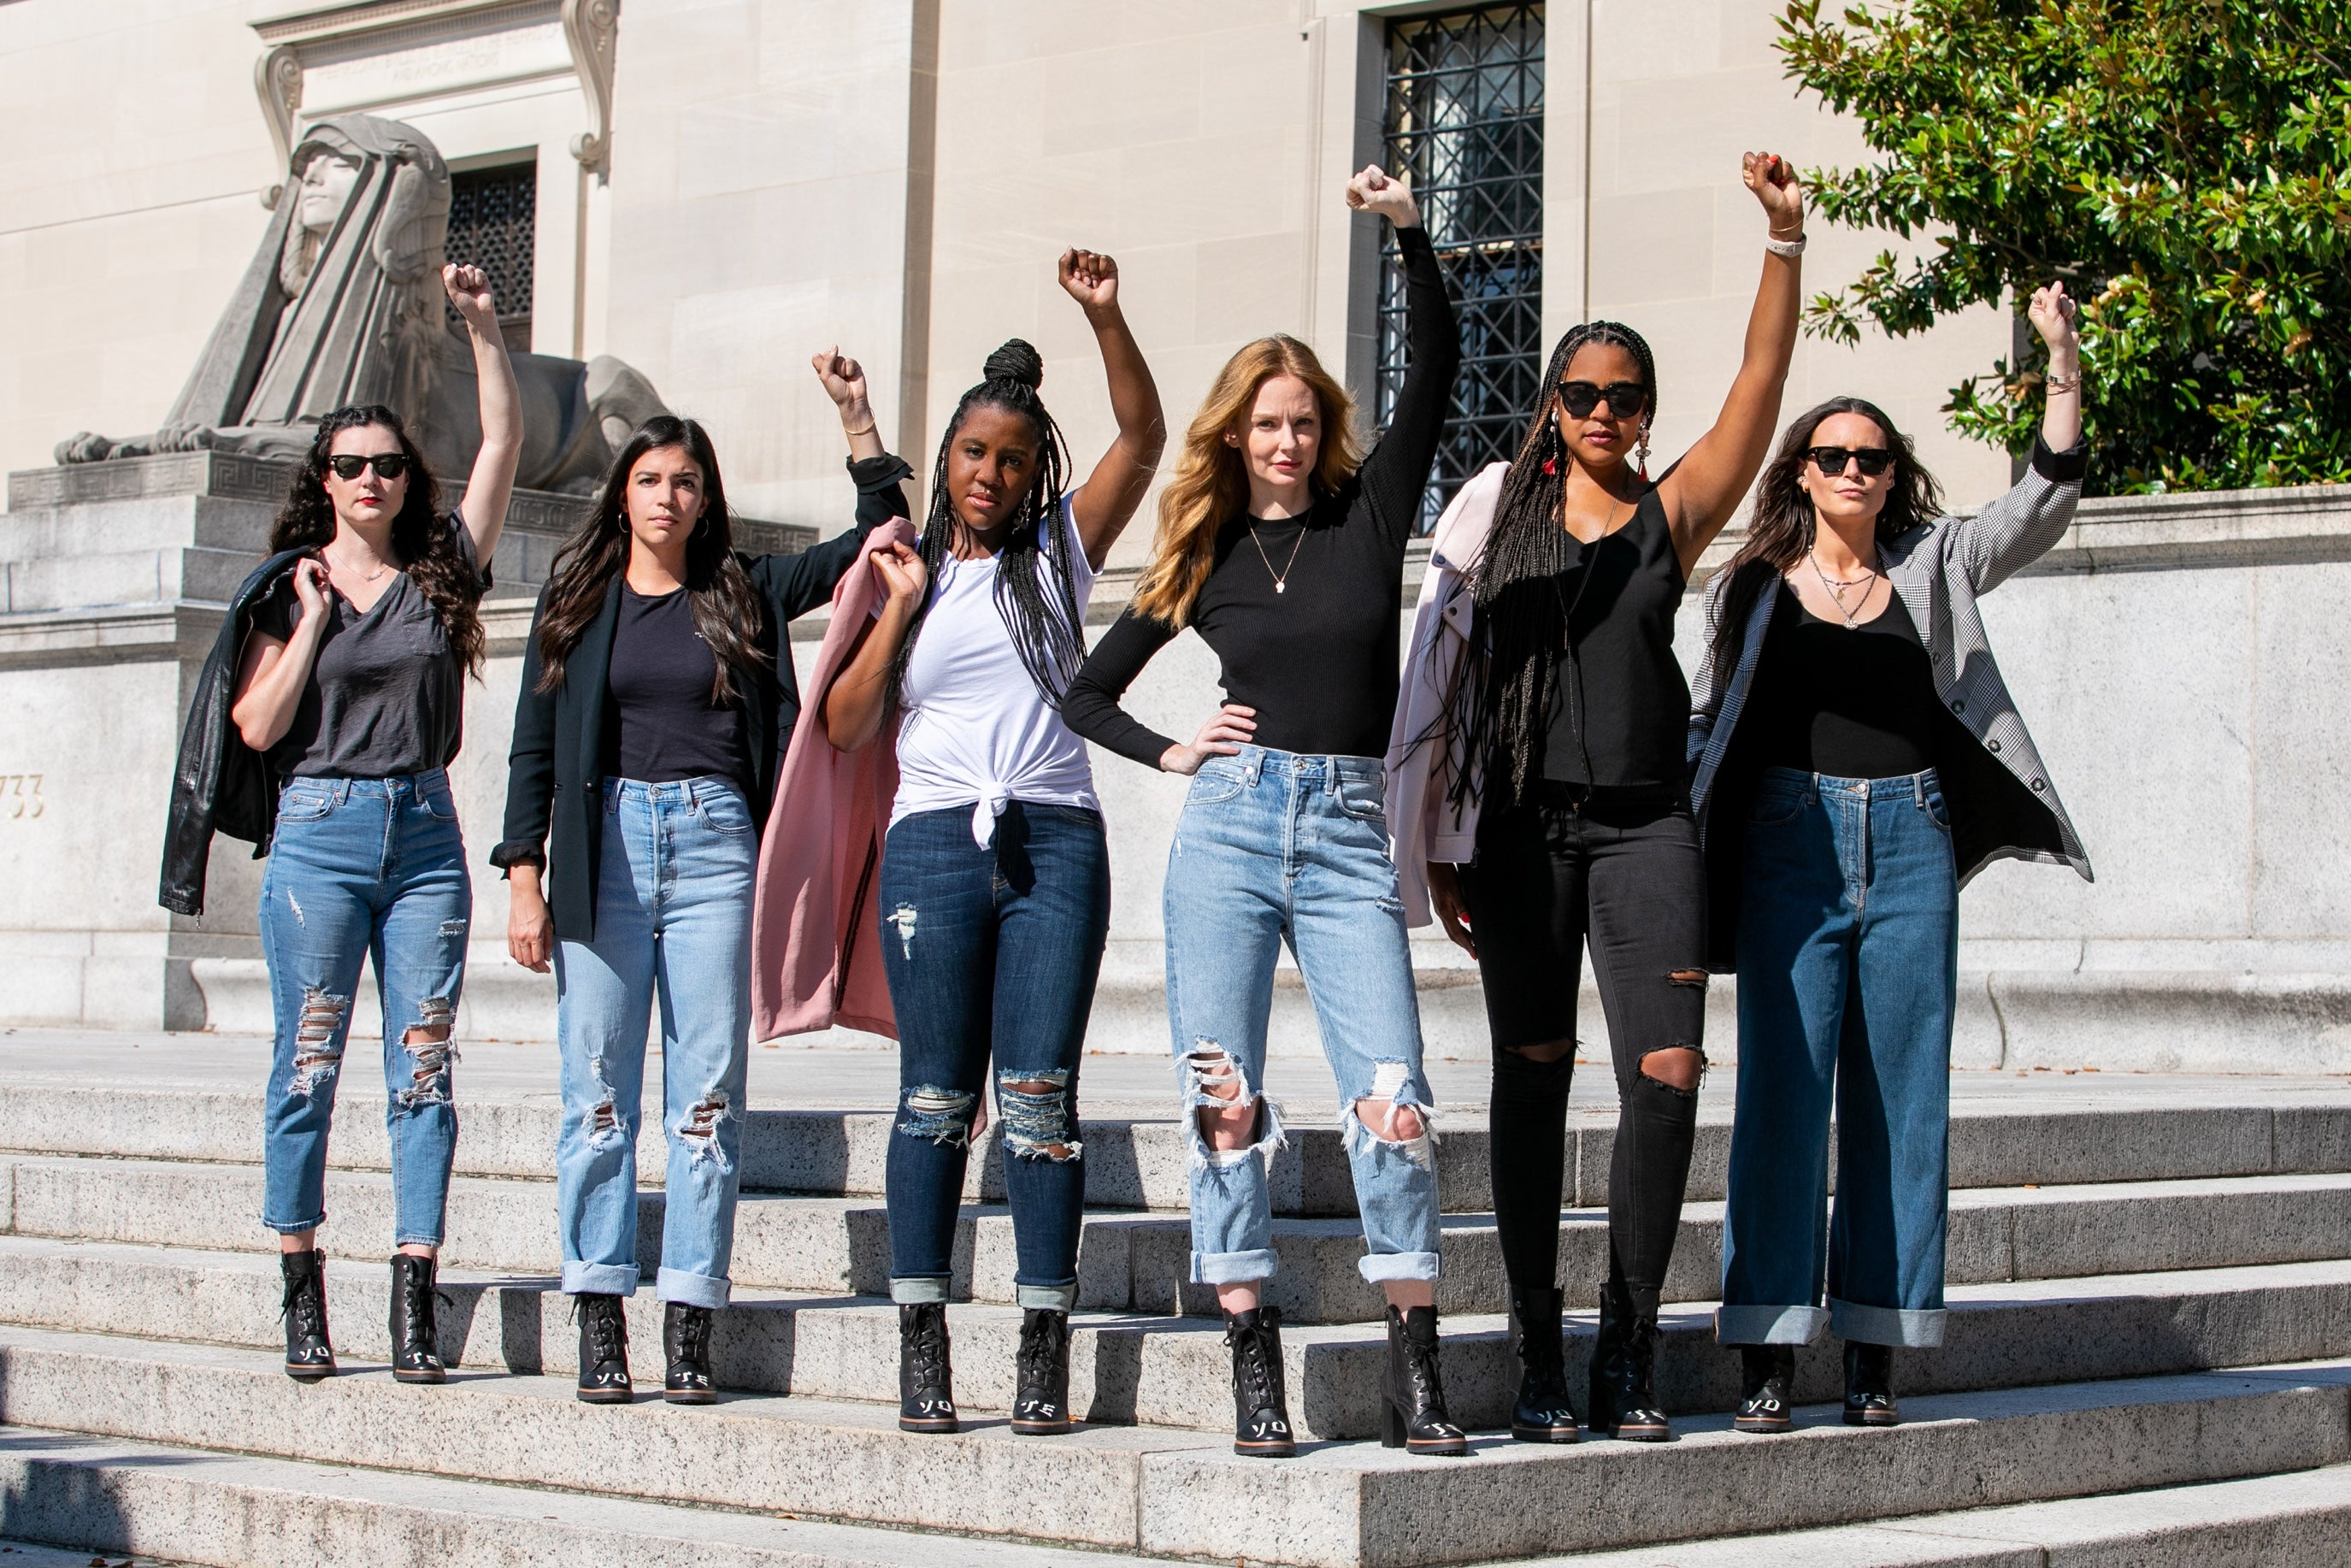 Six women stand on cement steps, all with fists raised in the air